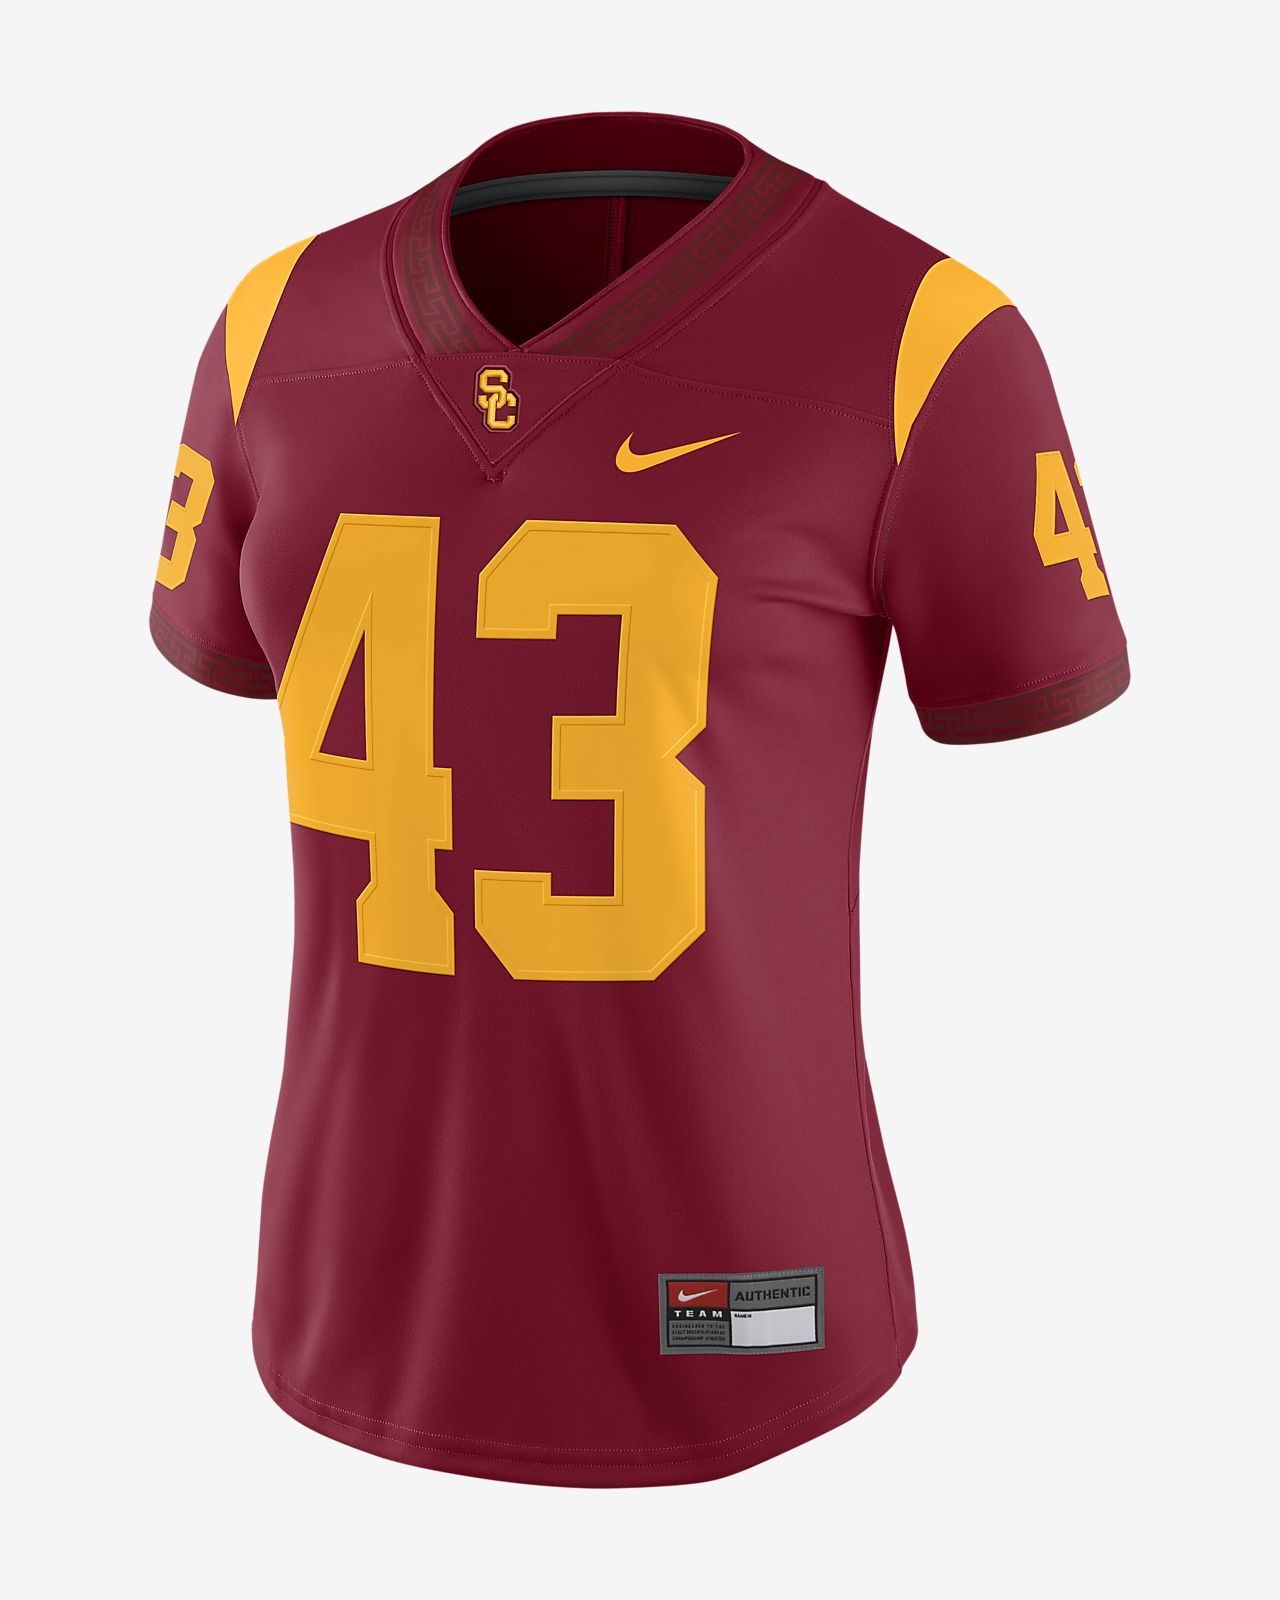 new arrival b2262 3a45b Nike College Dri-FIT Game (USC) Women's Football Jersey